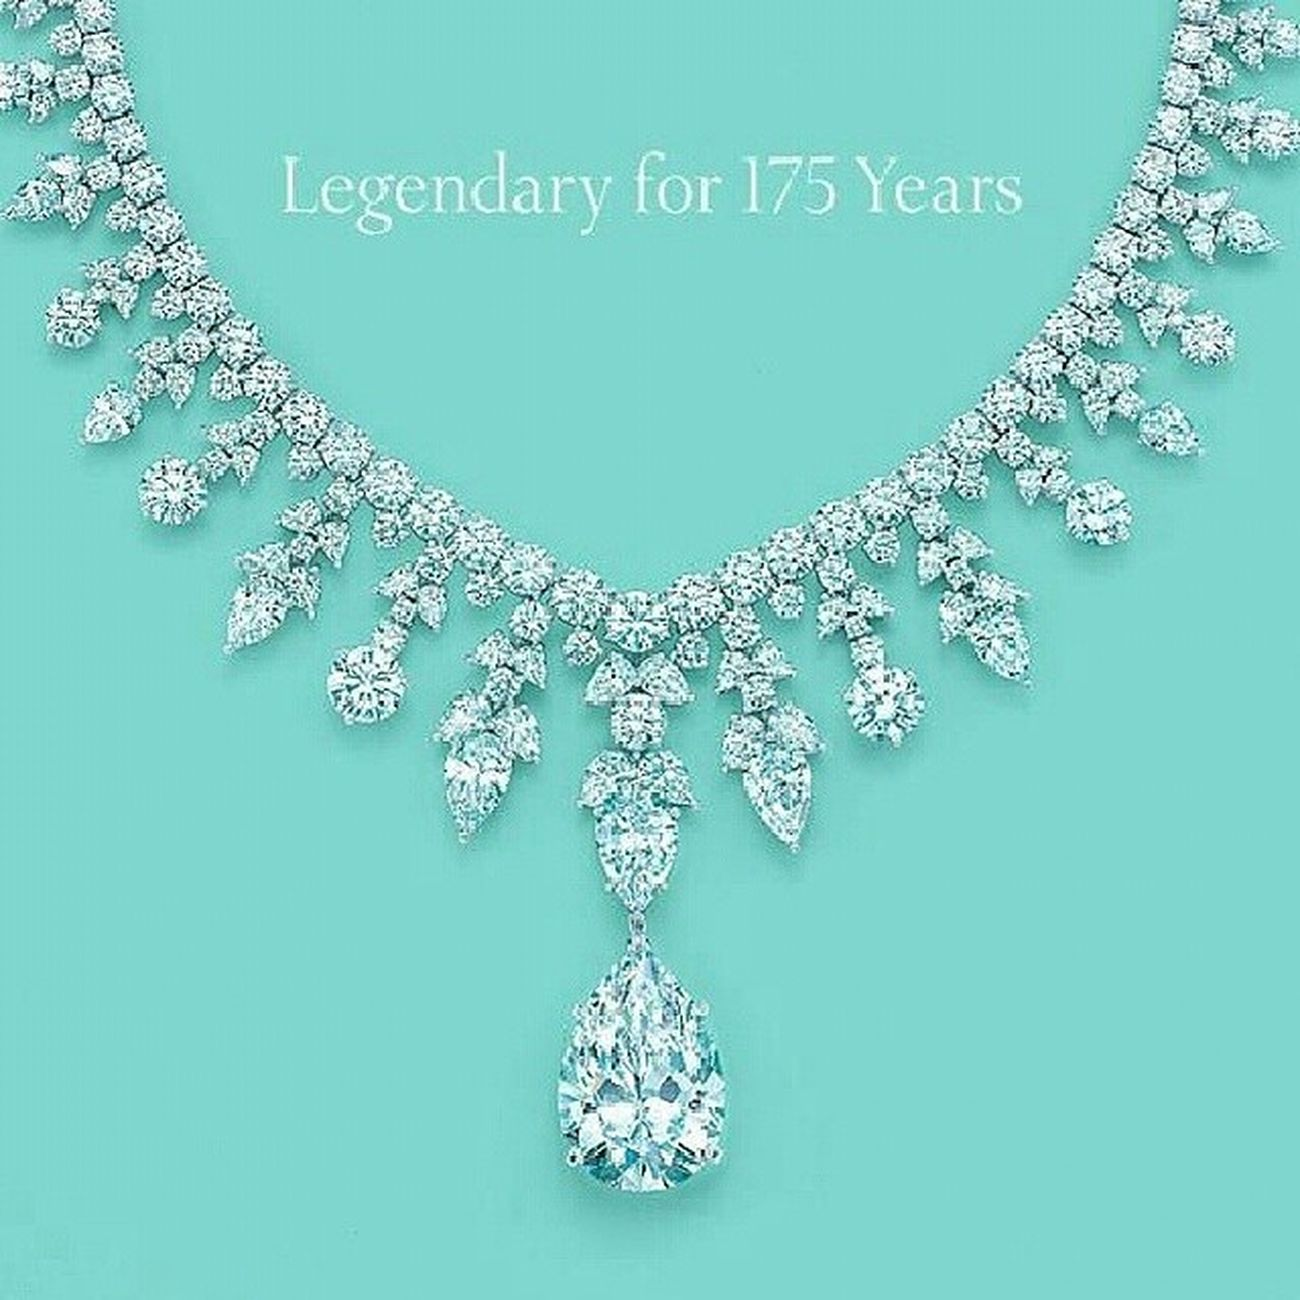 Gecenin bir vakti;) Tiffanyco @tiffanyandco Jewelry Jewellery Diamond Diamondjewelry Dream Amazing Necklace Loveit Beautiful Love Good Fashion Fblogger Gorgeous Fashioninsta Dream